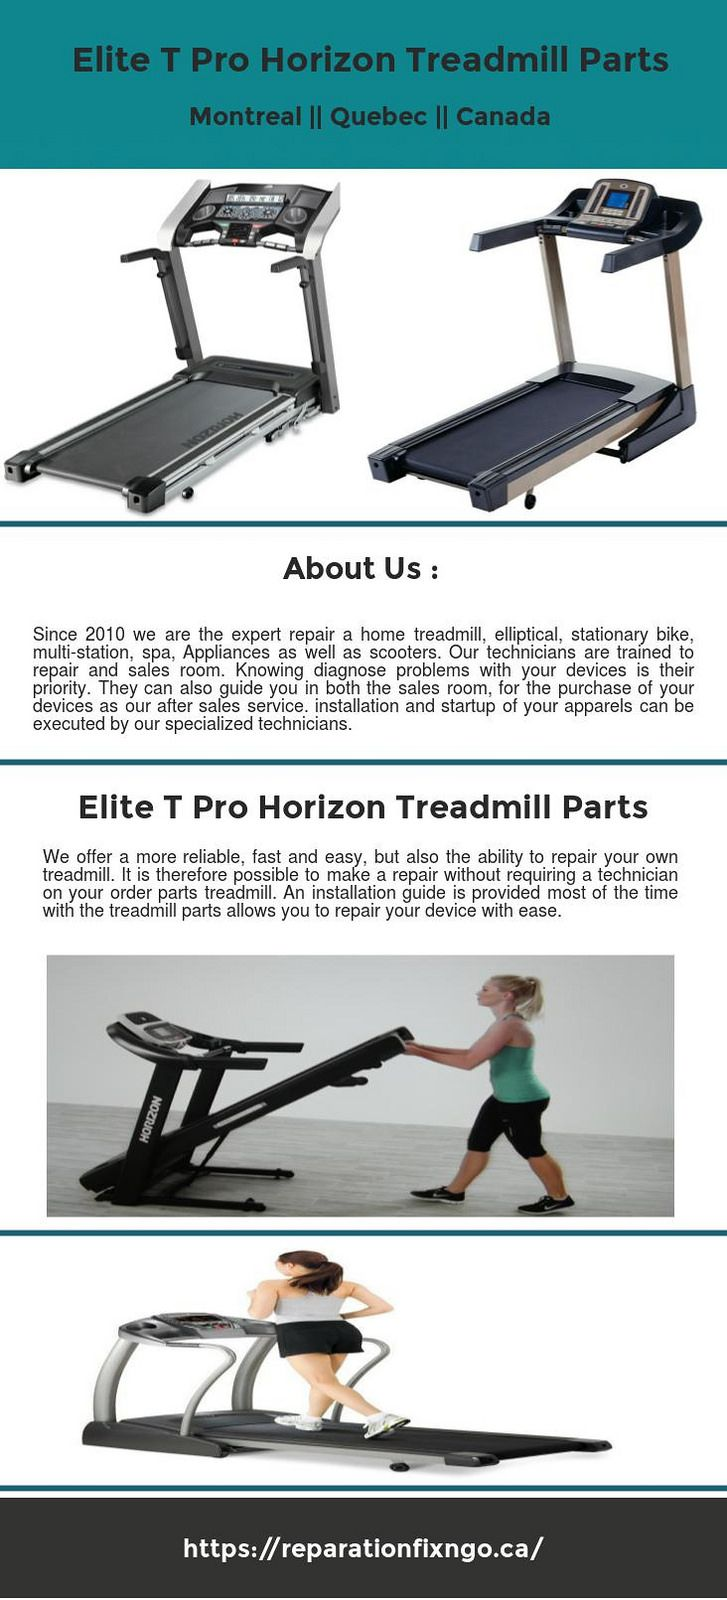 https://flic.kr/p/NWbyG1 | Latest Model Of Elite T Pro Horizon Treadmill Parts In Montreal | We are a leading in providing the latest model of Elite T Pro horizon treadmill parts in Montreal and we can also repair all types of fitness equipments of any brand. Our technicians are well trained to repair any kind of equipment fast.